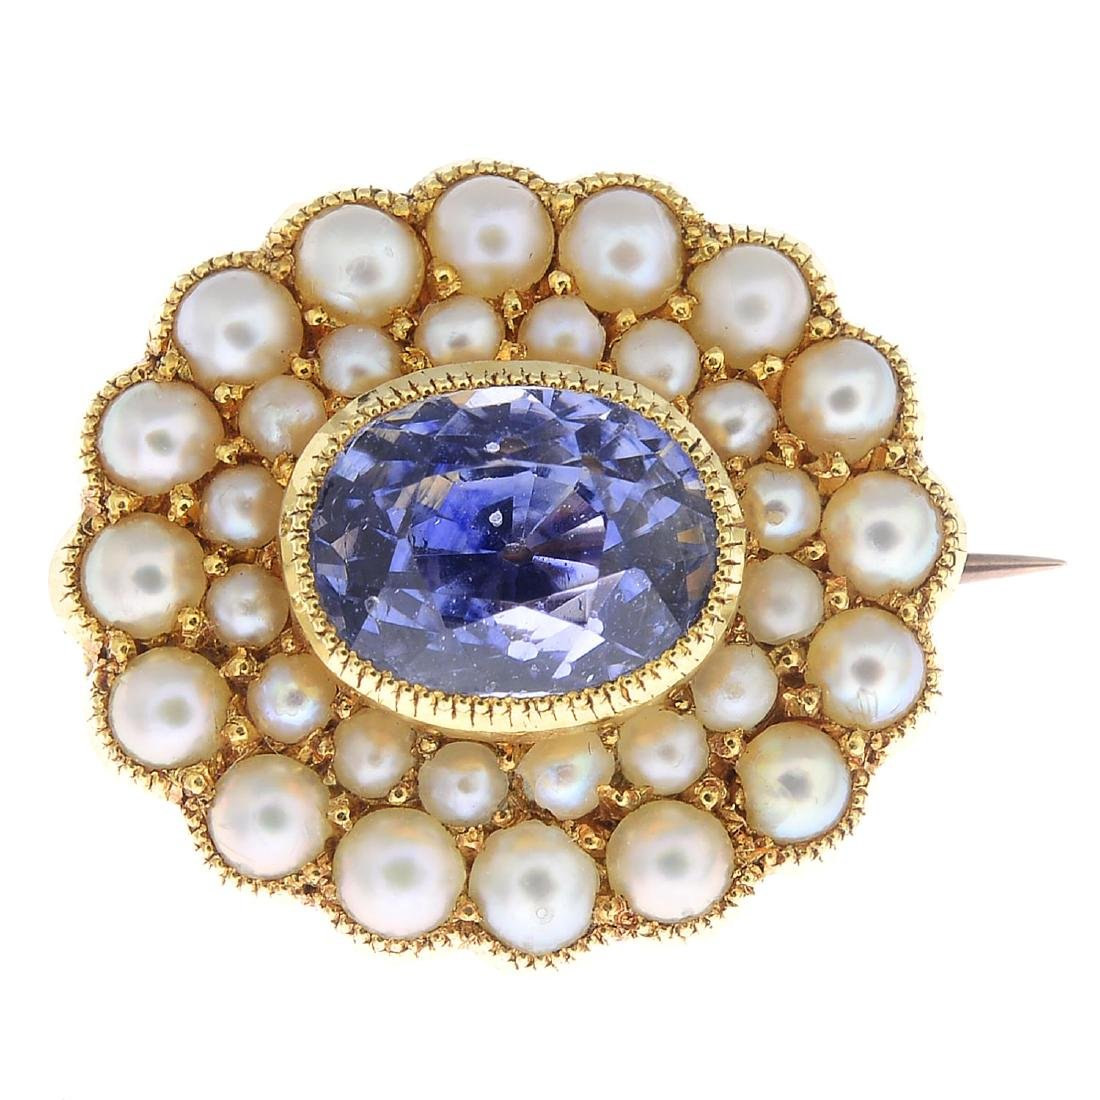 An early 20th century 15ct gold Sri Lankan sapphire and